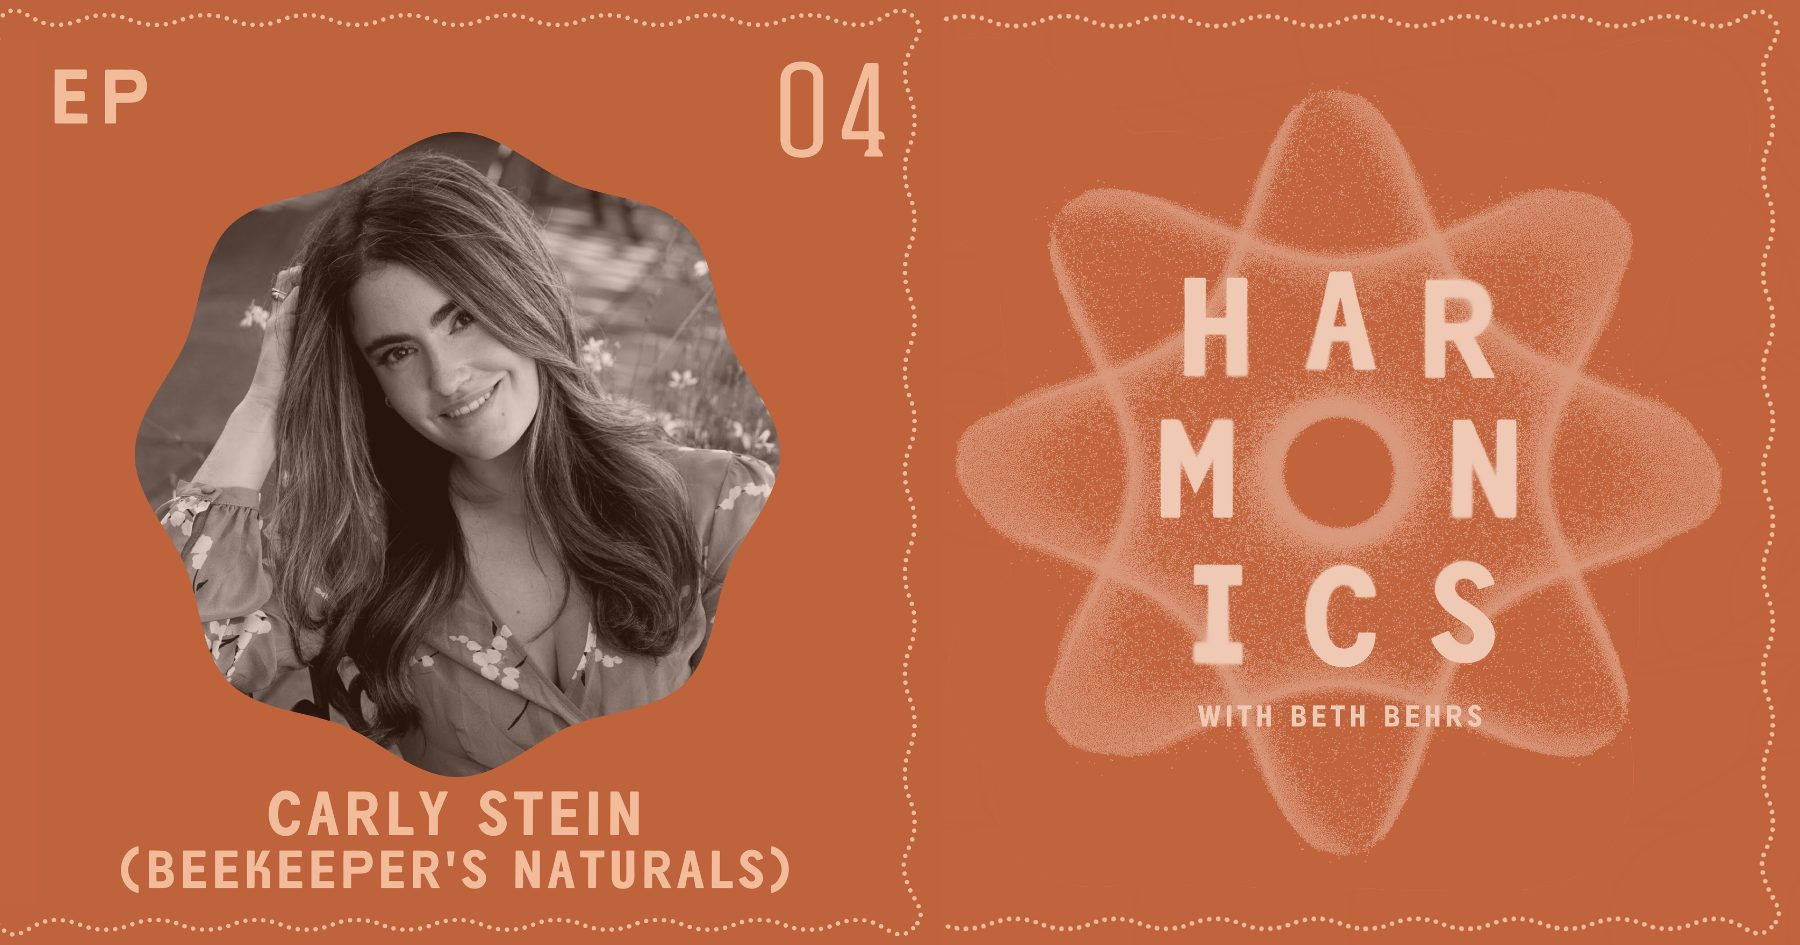 Harmonics with Beth Behrs: Carly Stein